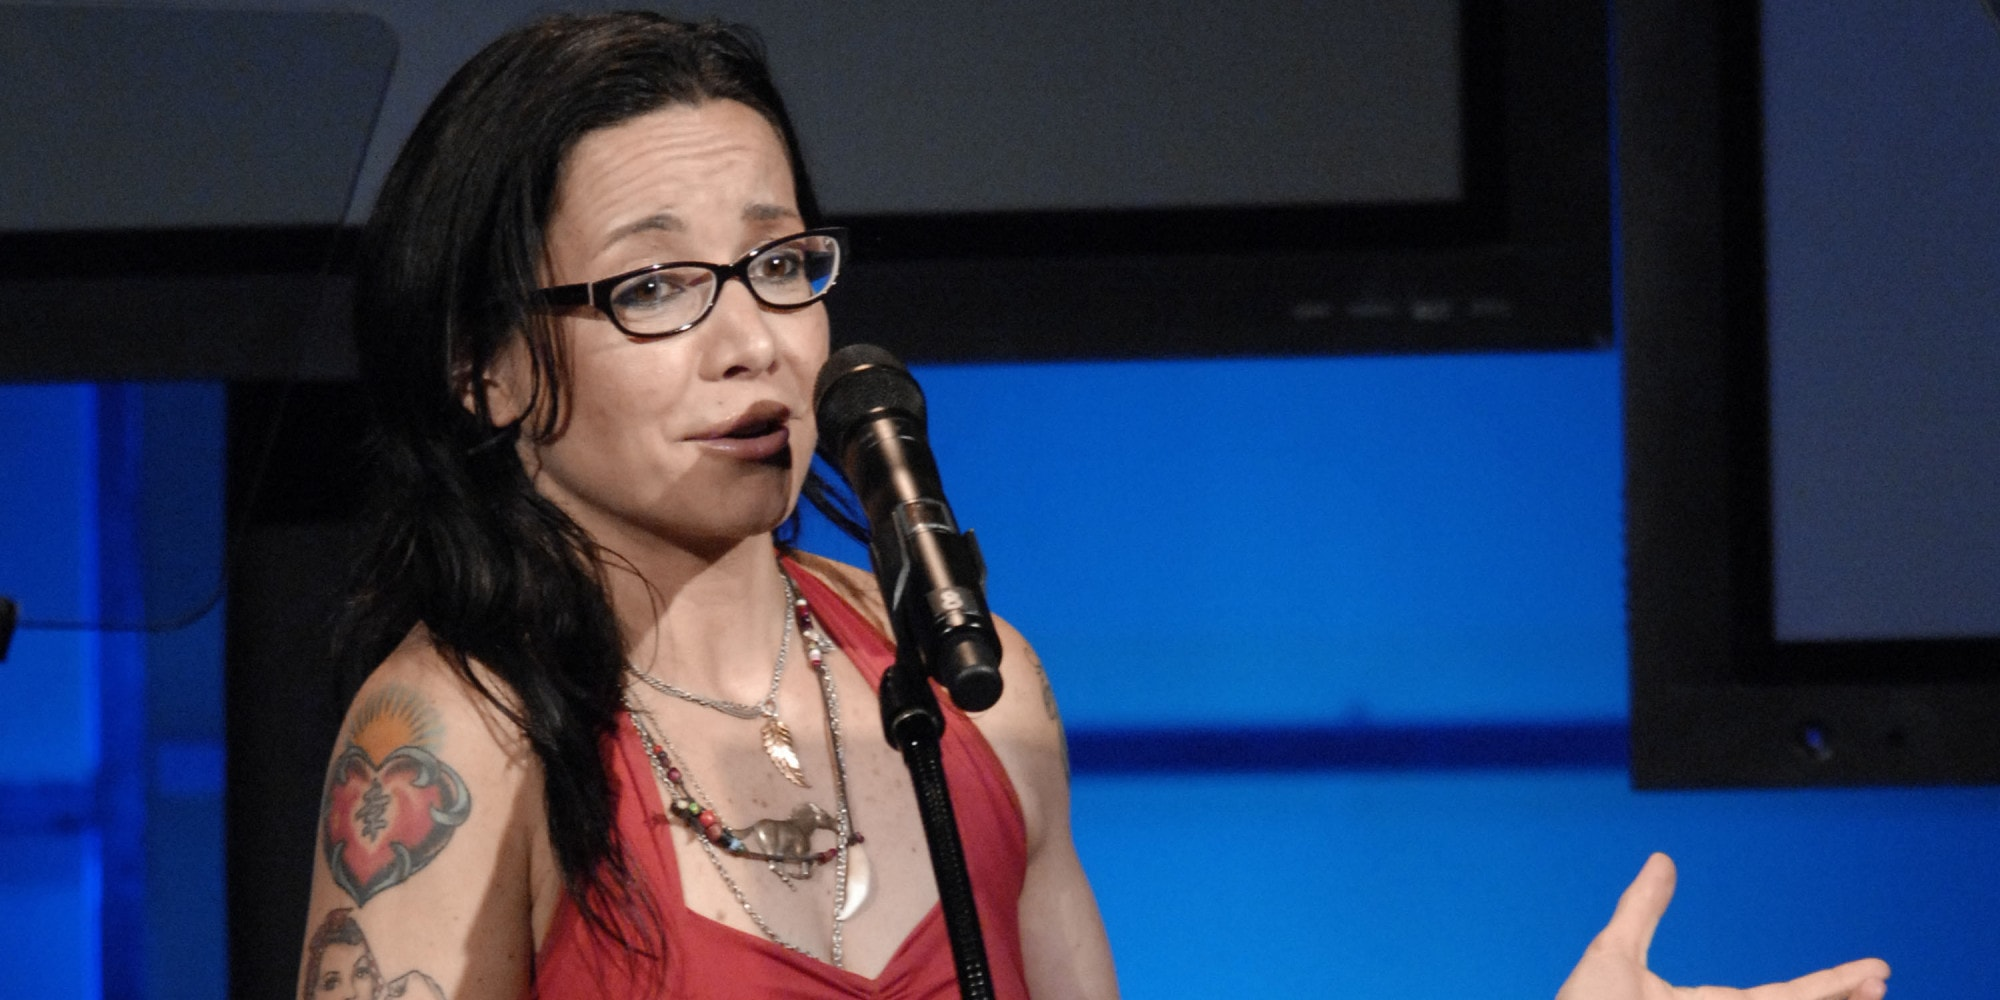 Janeane Garofalo Wallpapers hd